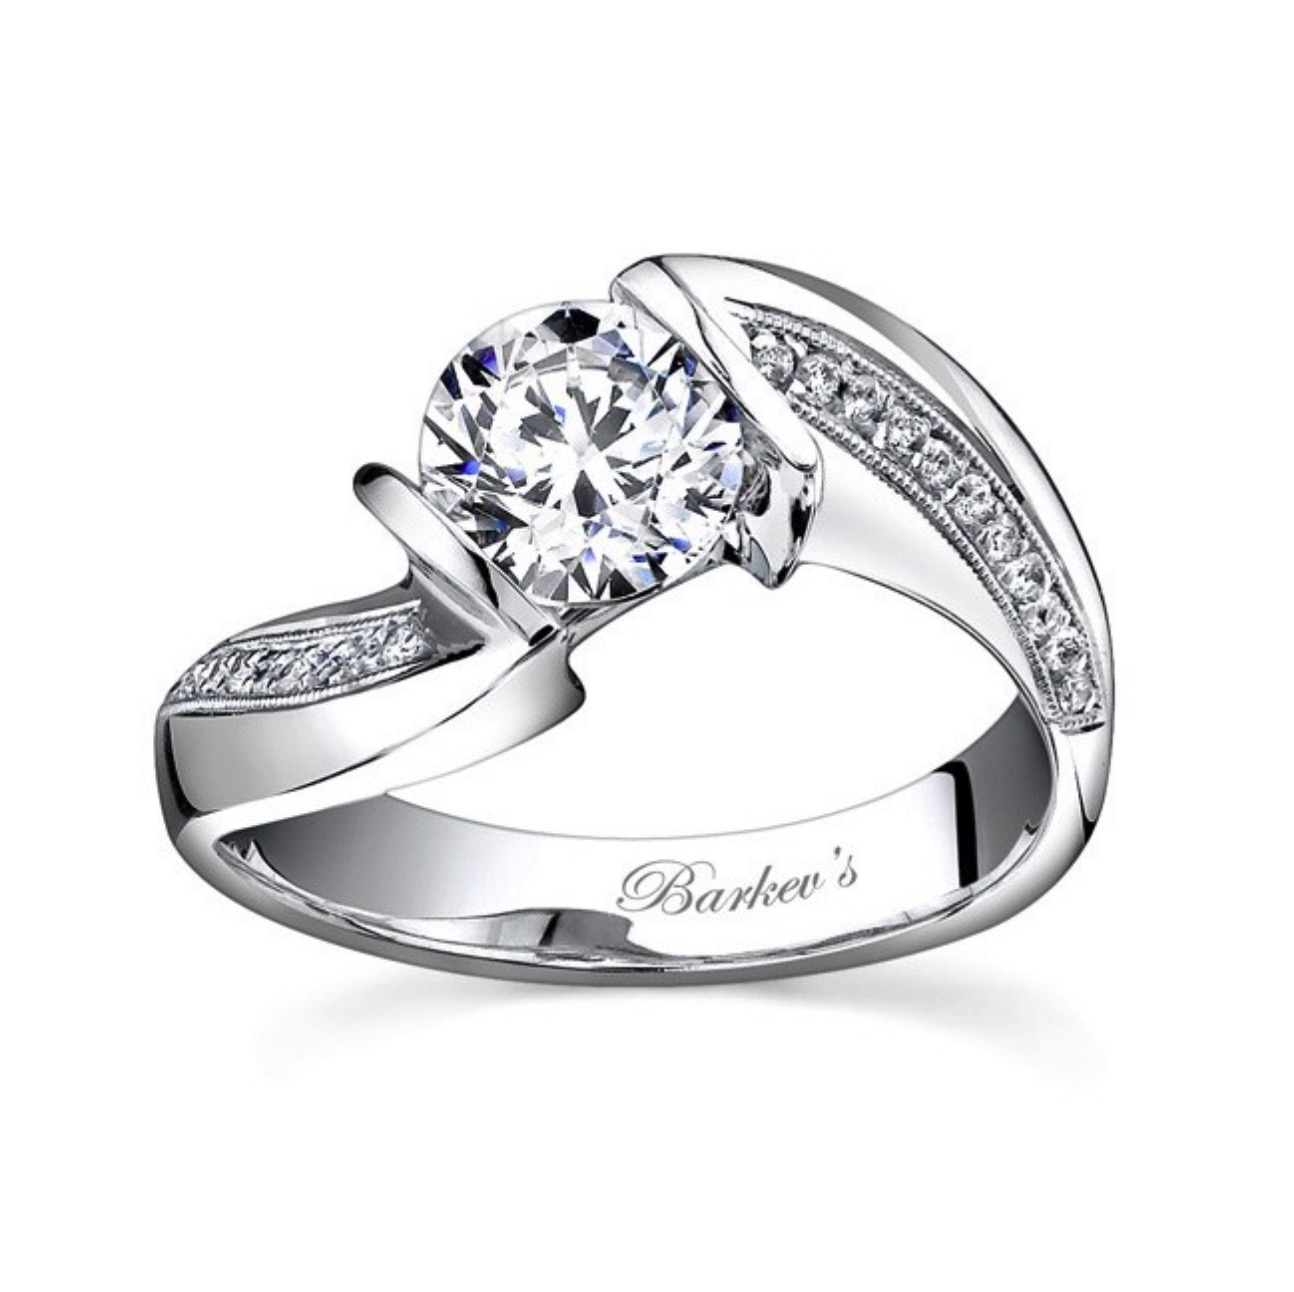 Diamond Engagement Ring - Barkev 14K White Gold Round with Cathedral Shank